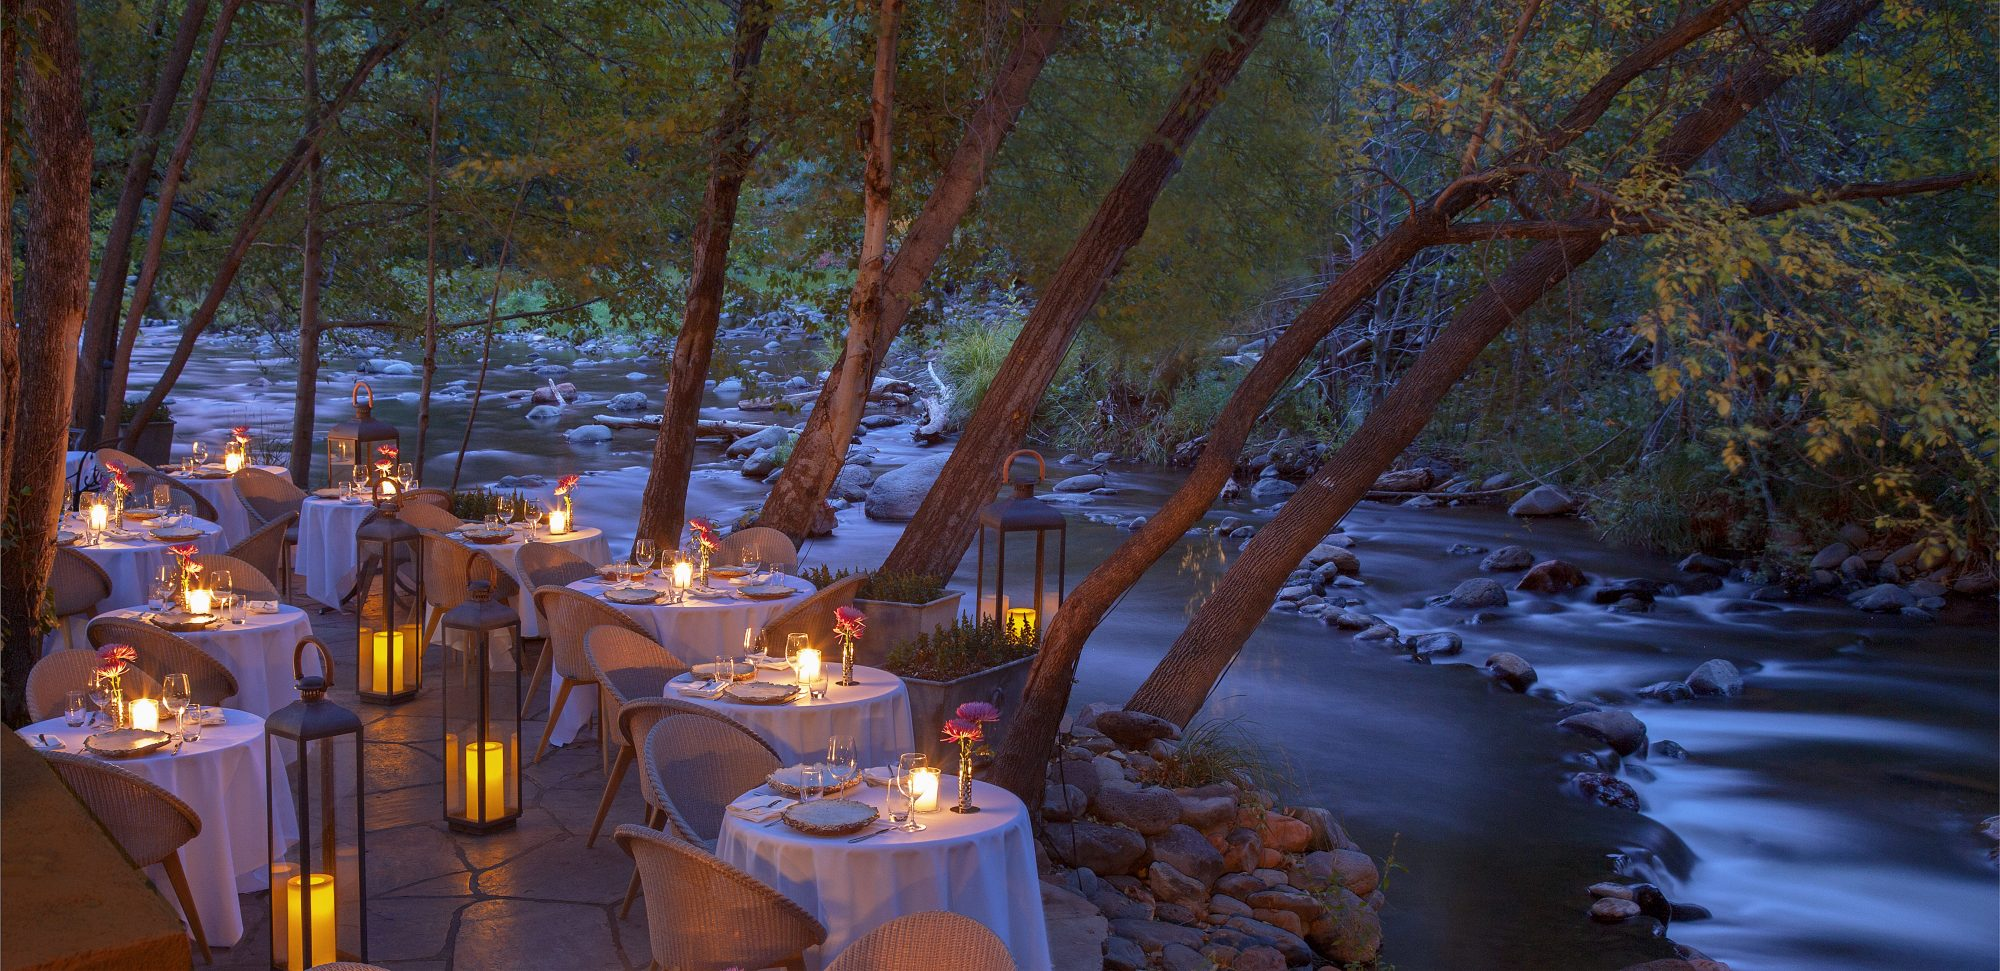 creekside-arizona-restaurant-opentable-XL-blog0517